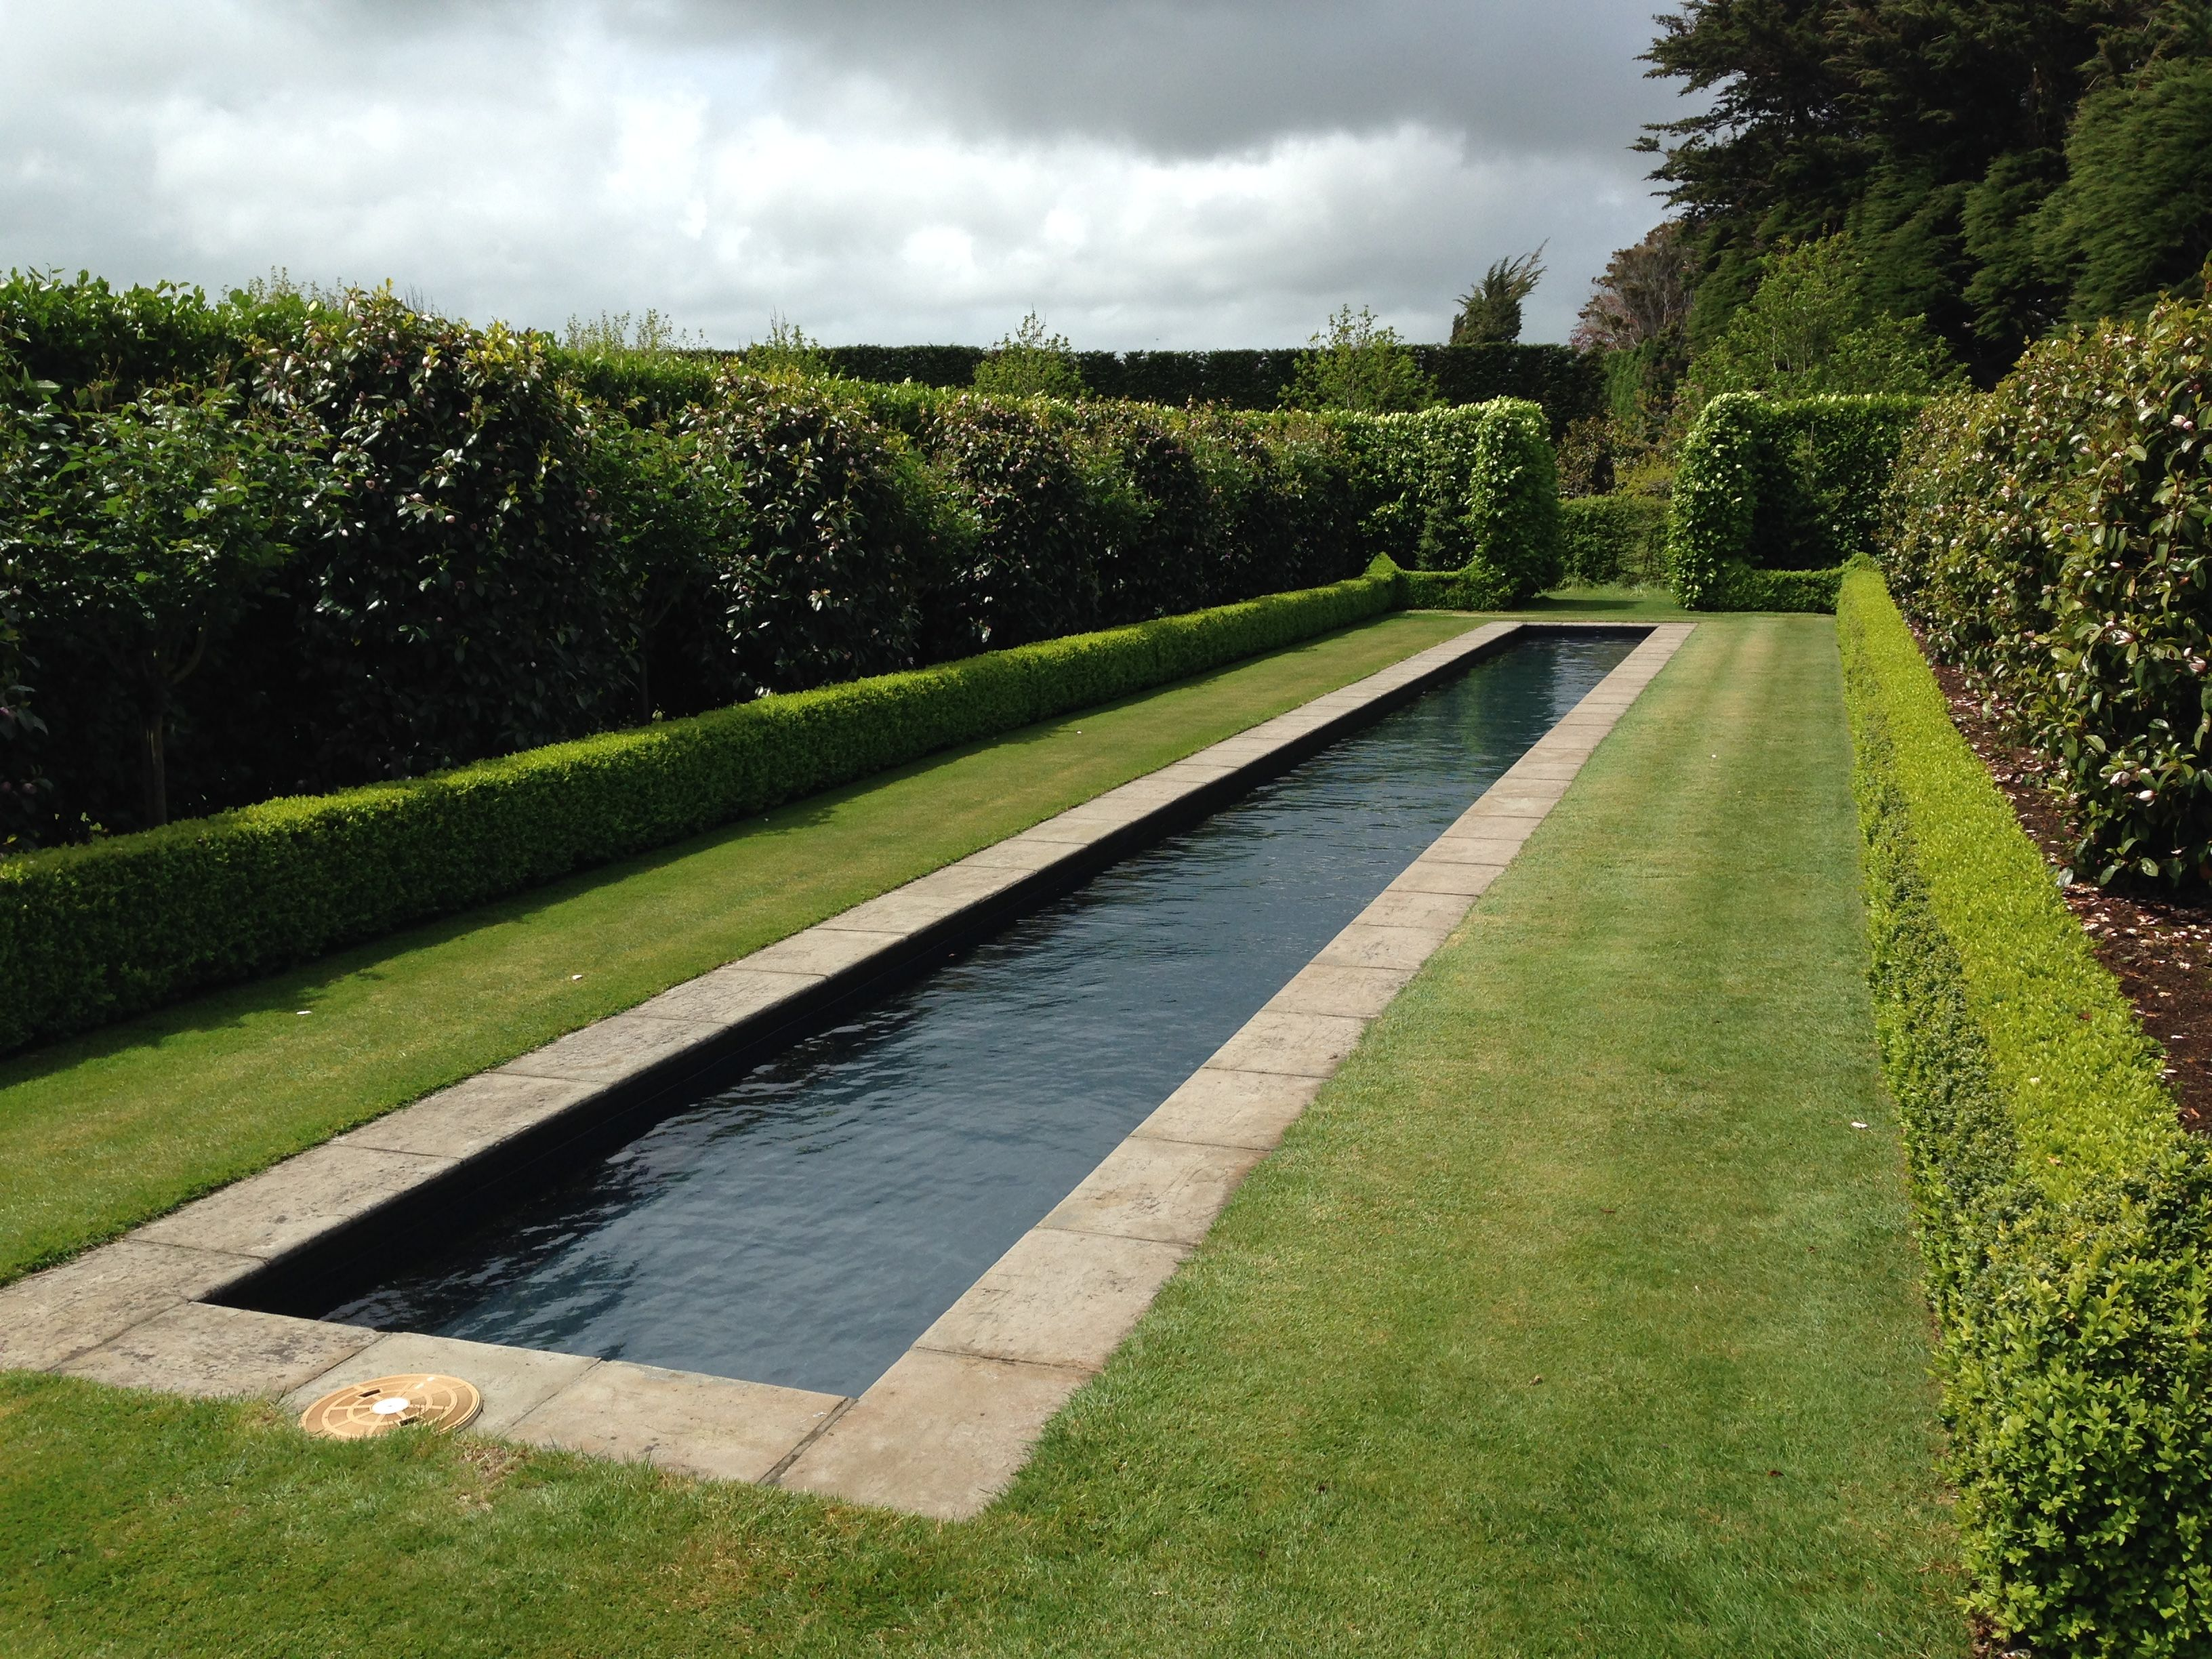 Formality and precision at gravetye garden janna - Reflecting pool ...